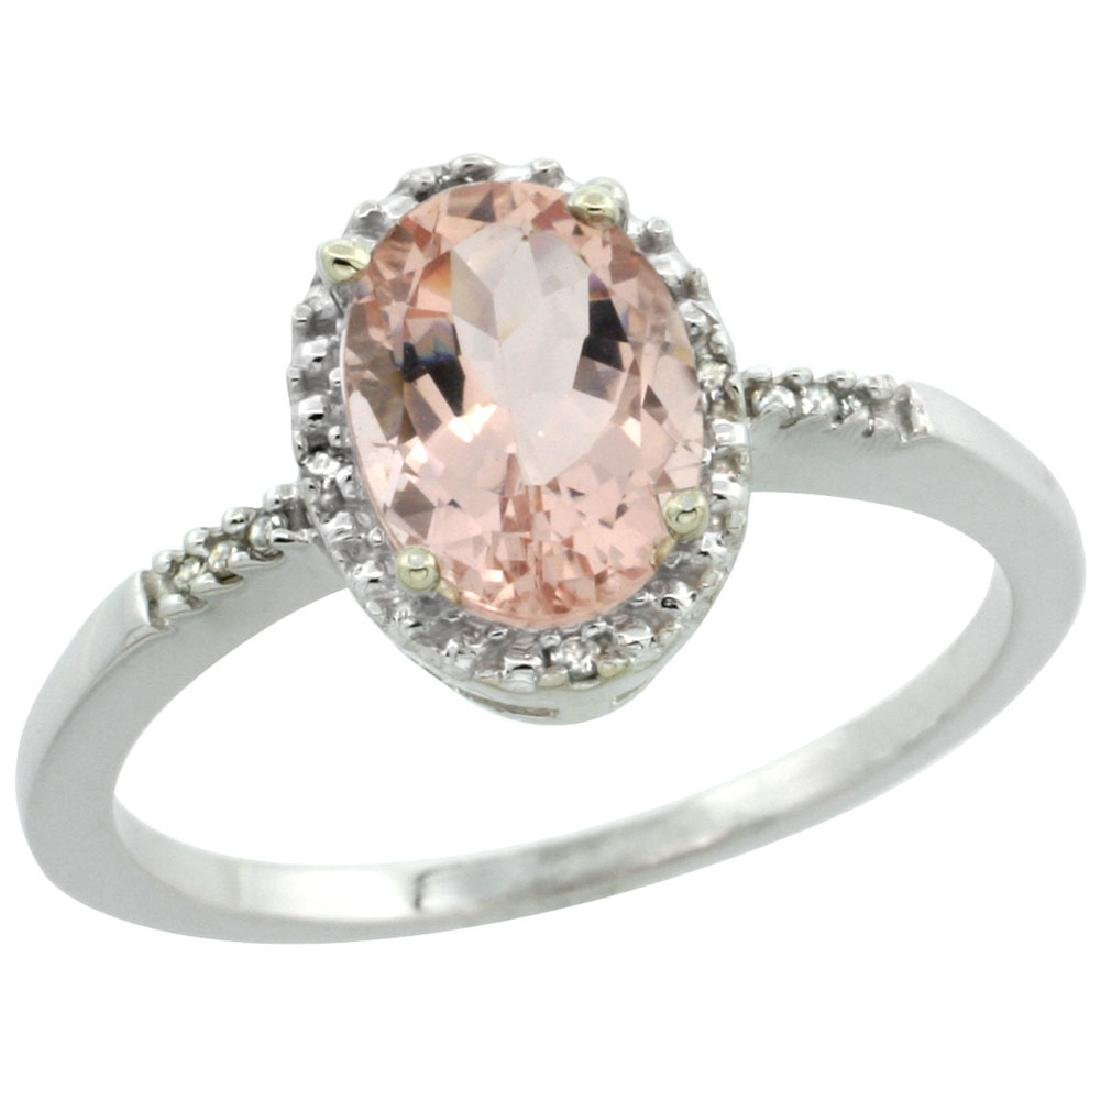 Natural 1.2 ctw Morganite & Diamond Engagement Ring 14K